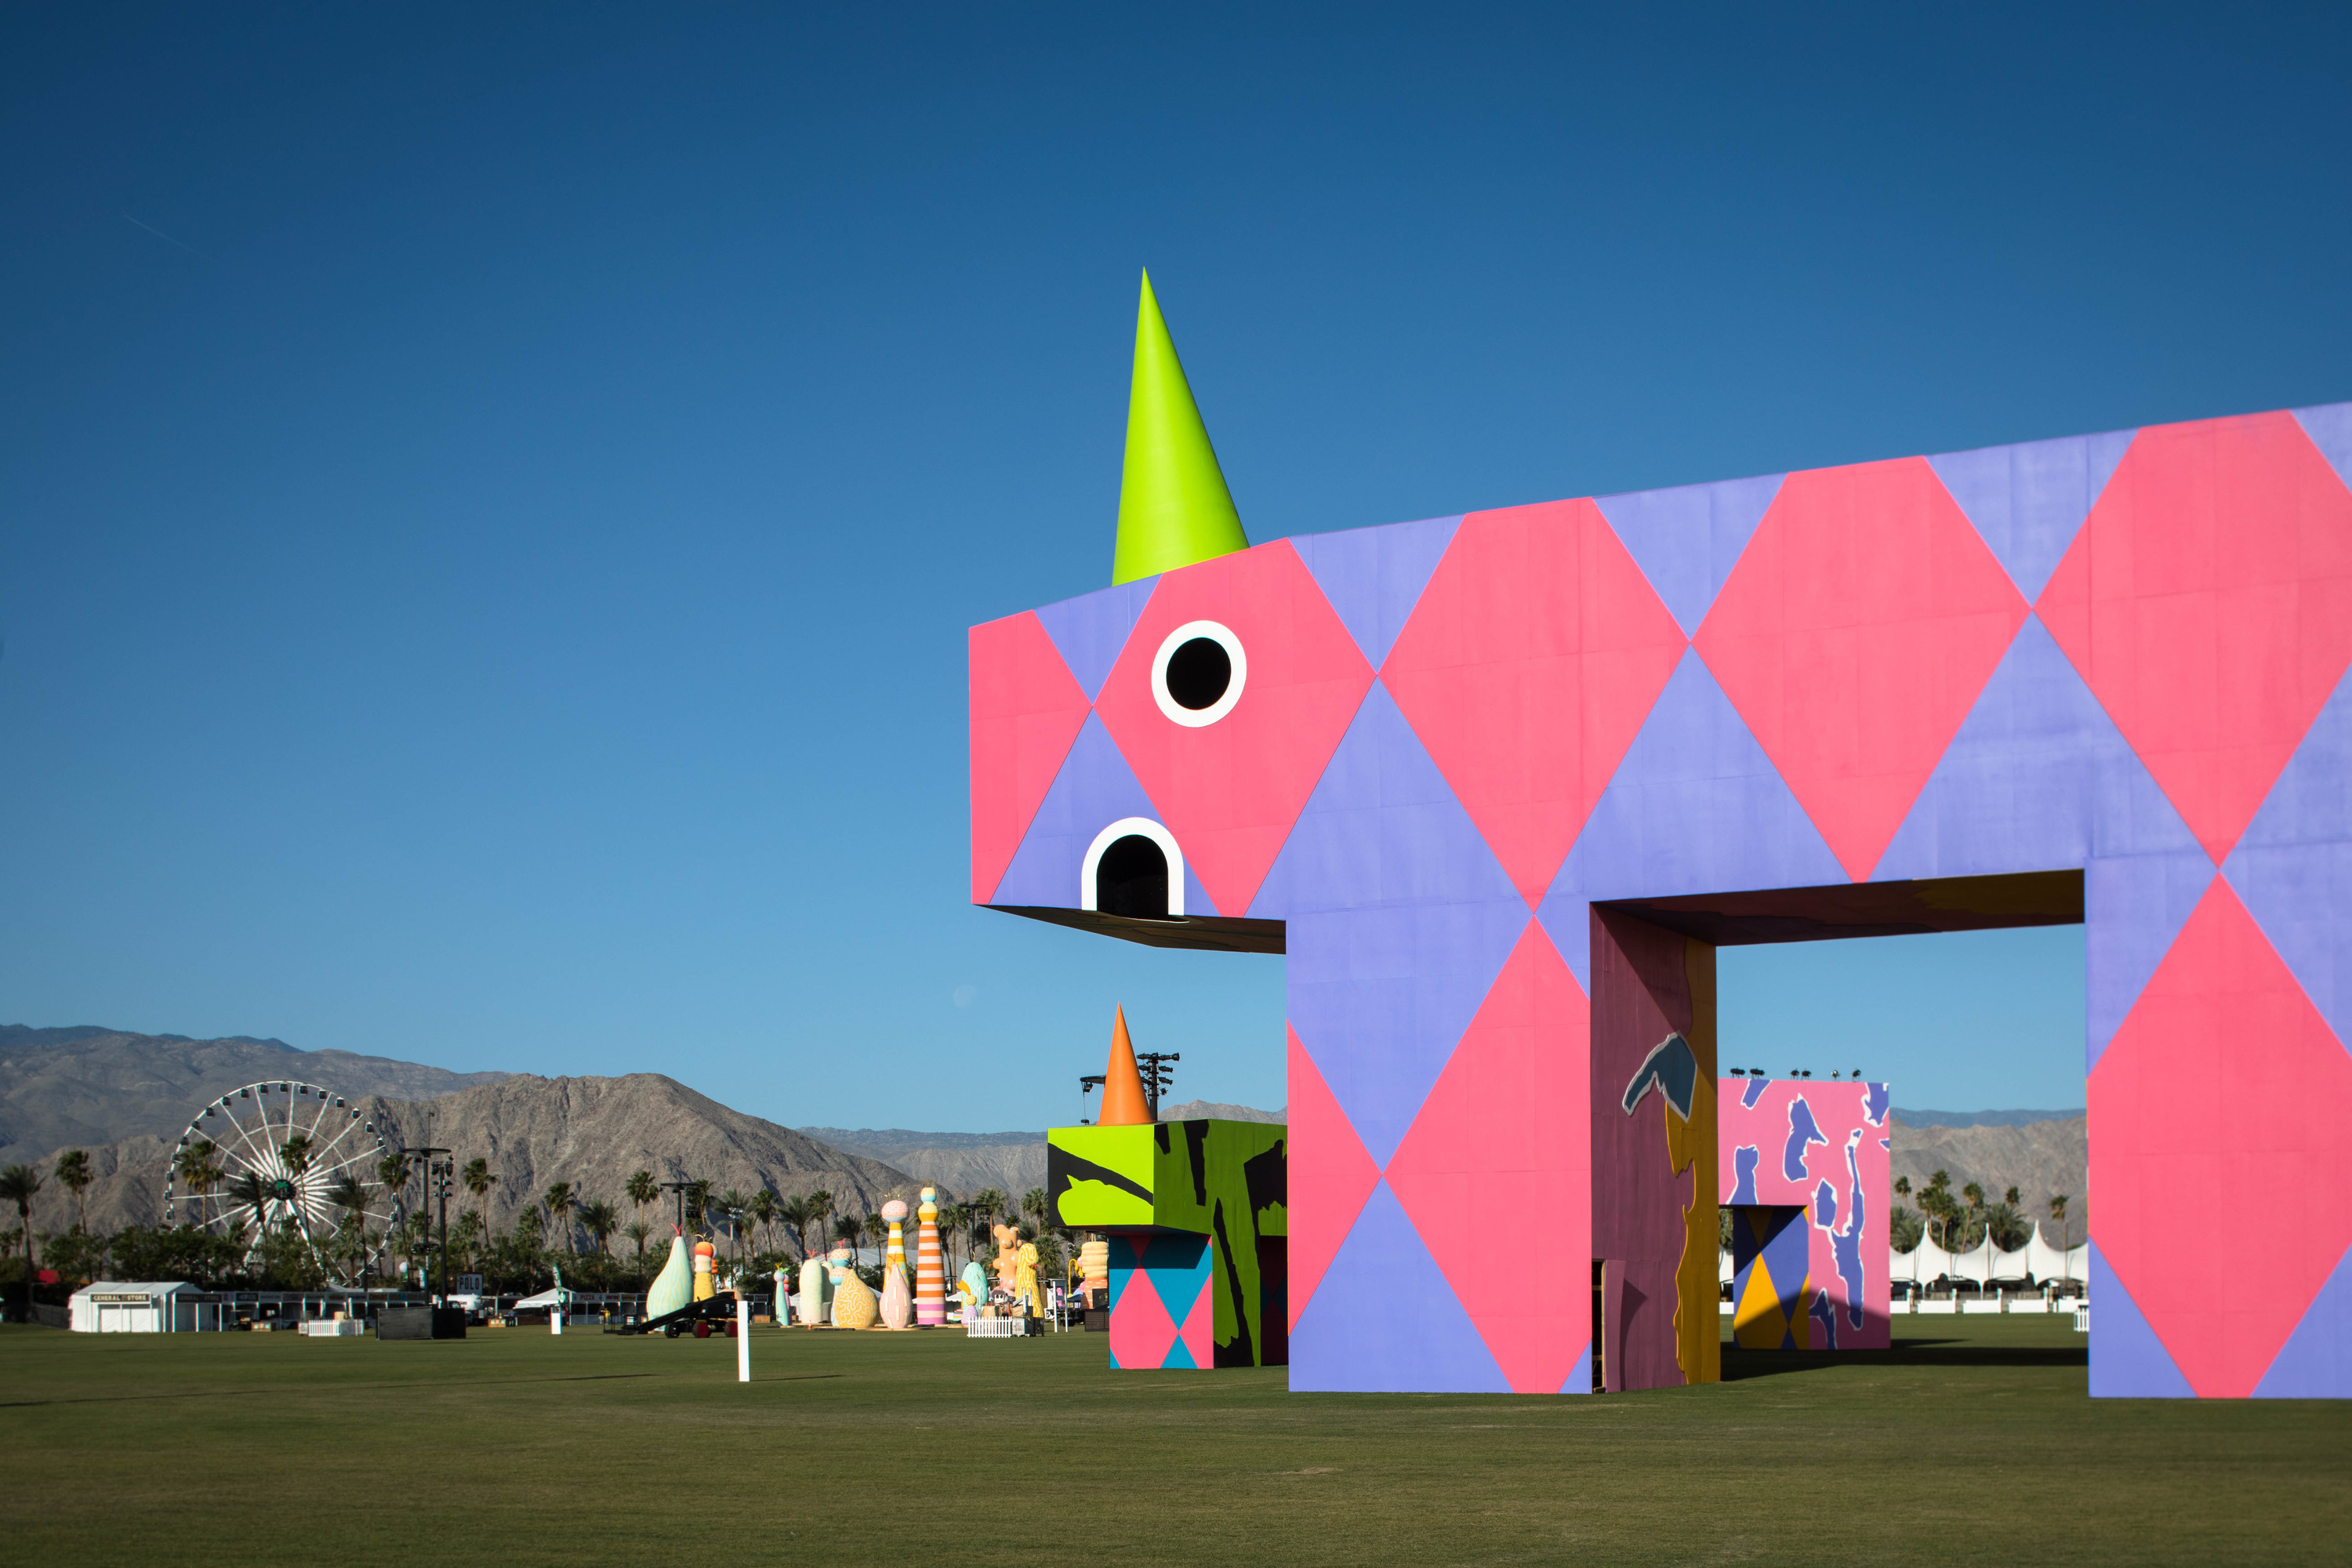 Coachella 2017's art installations - prepare to be amazed!